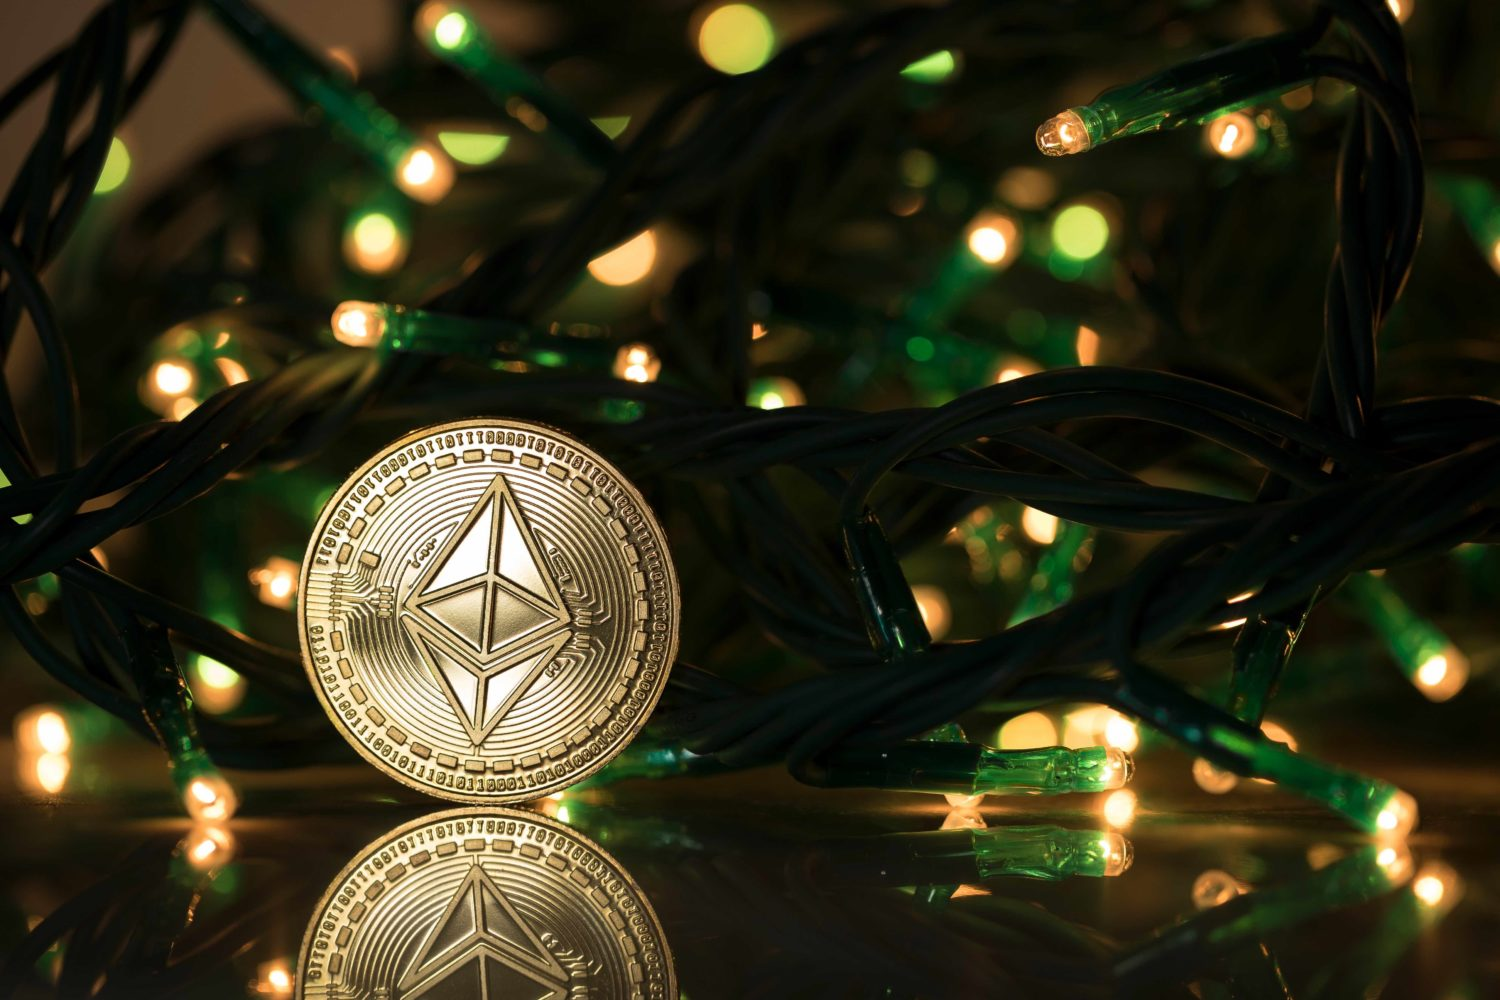 Fee Spike on Ethereum Classic Raises Fears of More Exchange Attacks